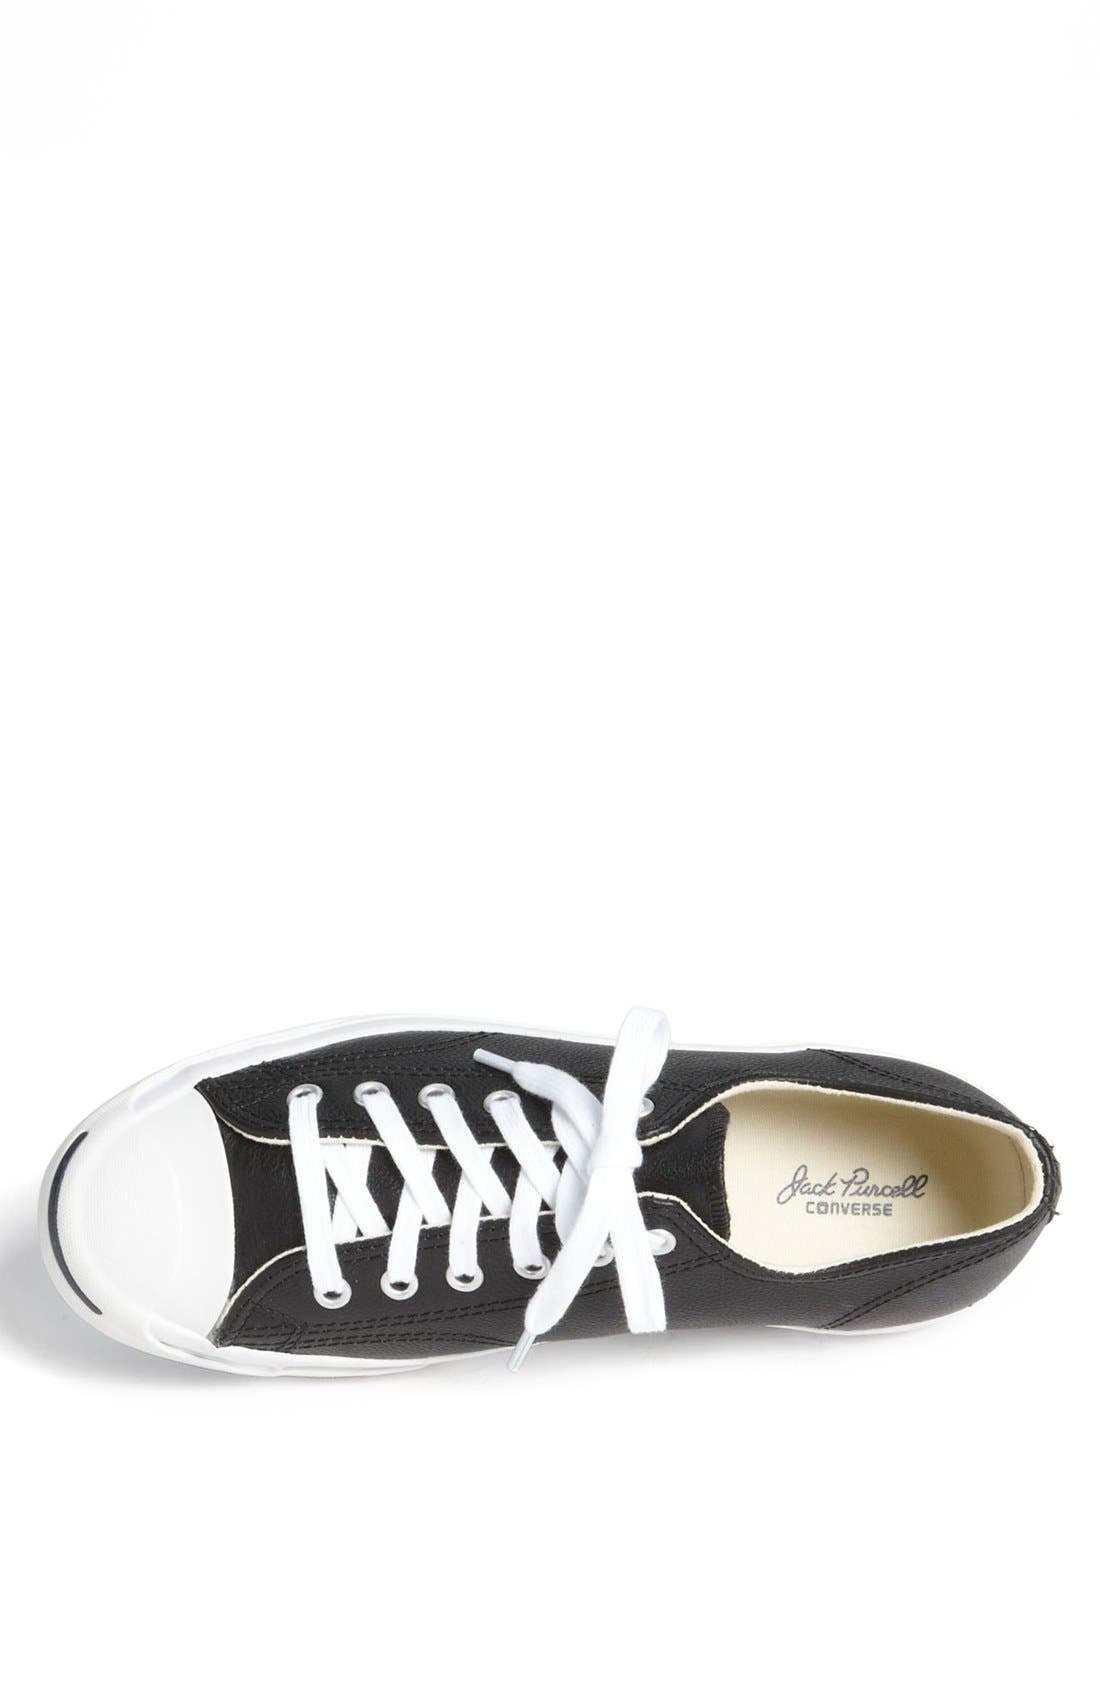 Alternate Image 3  - Converse 'Jack Purcell' Leather Sneaker (Men)